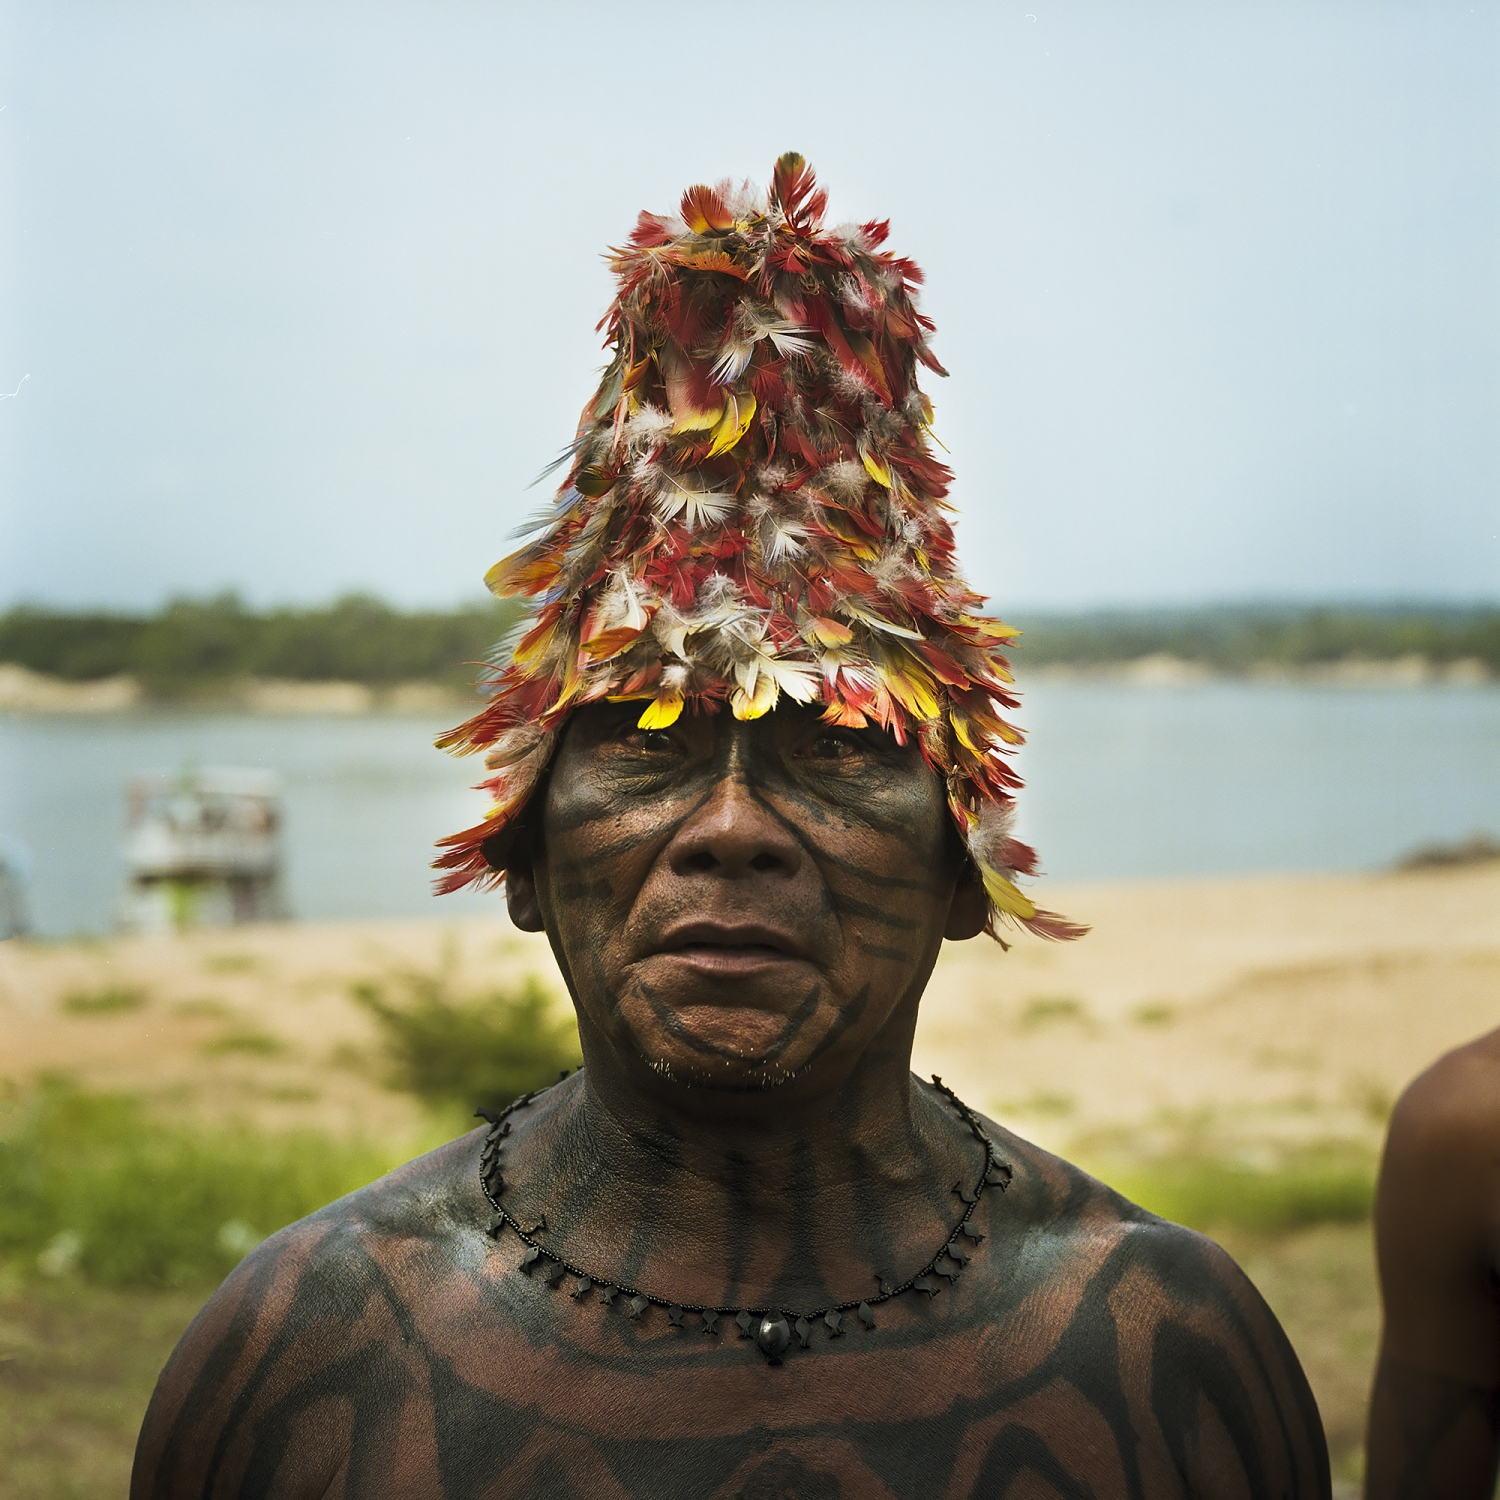 2014. A Mundurku chief during The 'Caravan of Resistance' protest in the village of São Luiz do Tapajós to resist government plans to construct a mega dam that would flood much of their territory on the Tapajos River in Para State, Brazil. In 2016 the Saõ Luiz Do Tapajos Dam project was suspended due the constitutionality of flooding Indigenous lands.